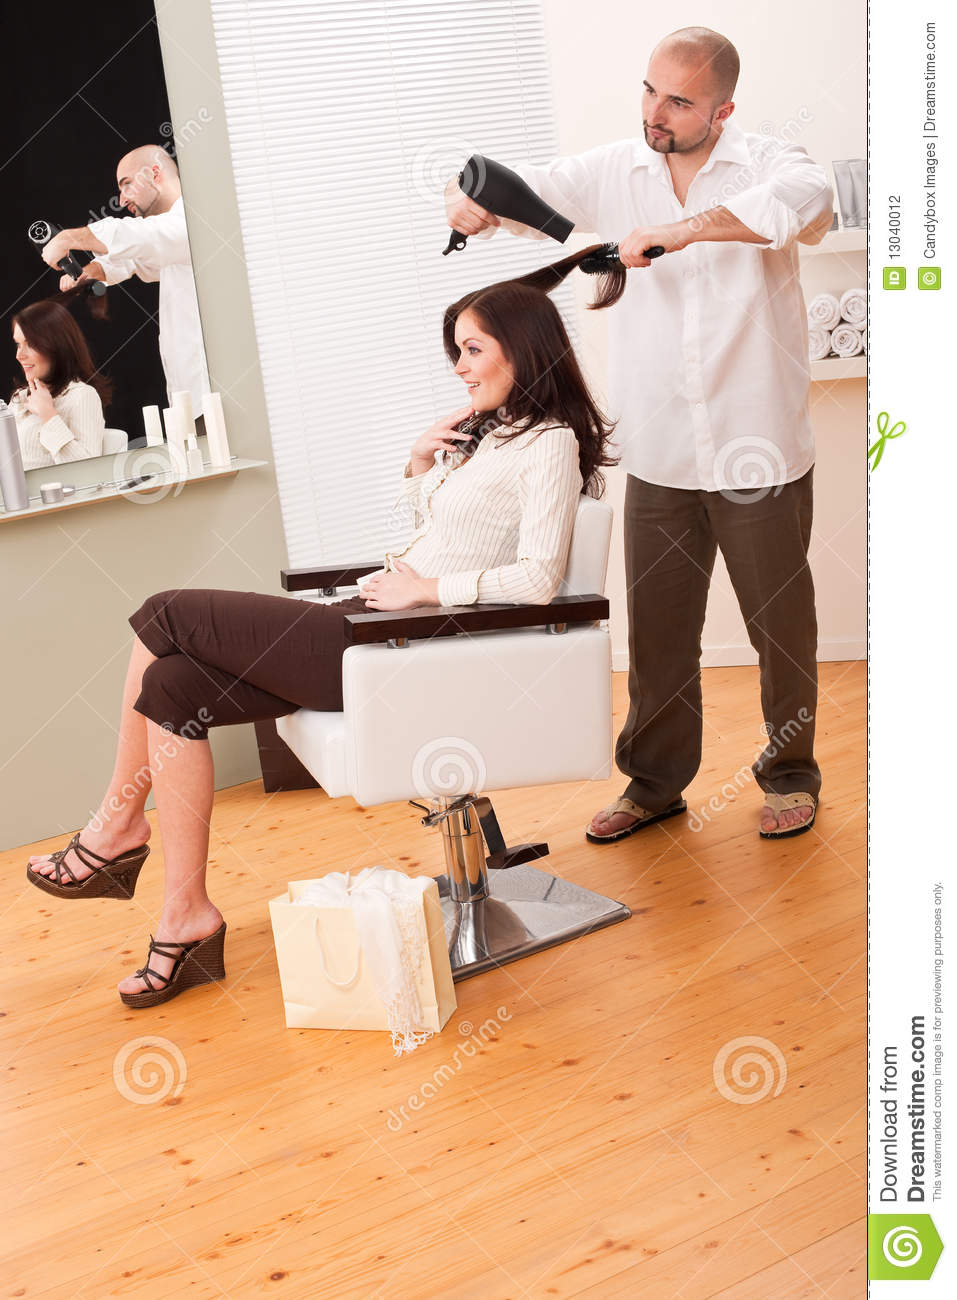 Professional Hairdresser : Professional Hairdresser With Hair Dryer Stock Photography - Image ...